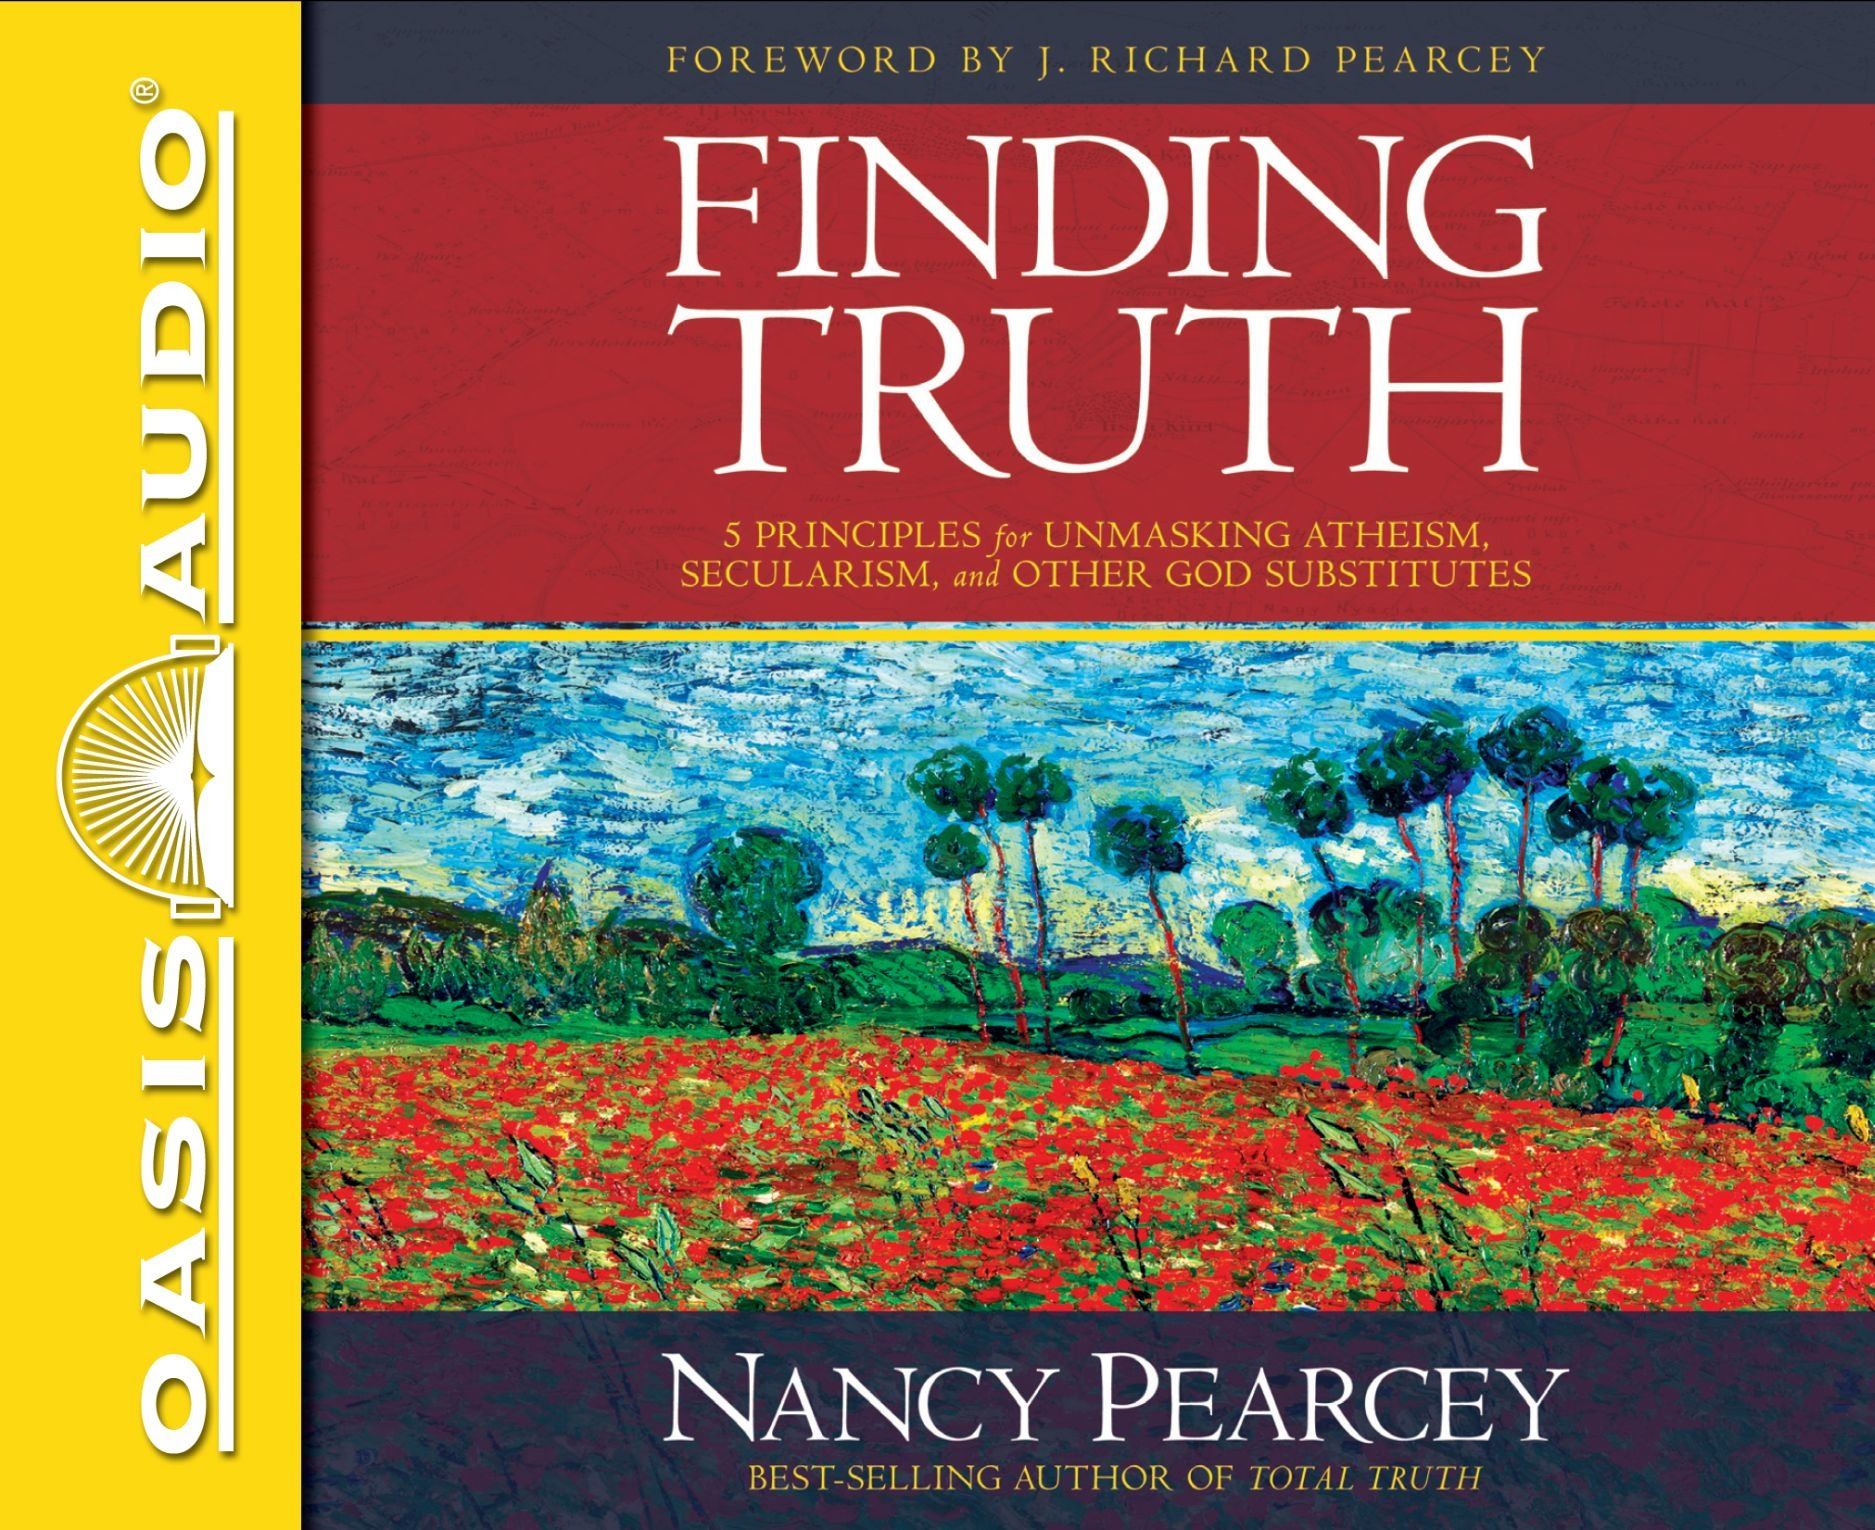 Finding Truth: 5 Principles for Unmasking Atheism, Secularism, and Other God Substitutes: Amazon.es: Pearcey, Nancy, Klein, Pamela: Libros en idiomas extranjeros